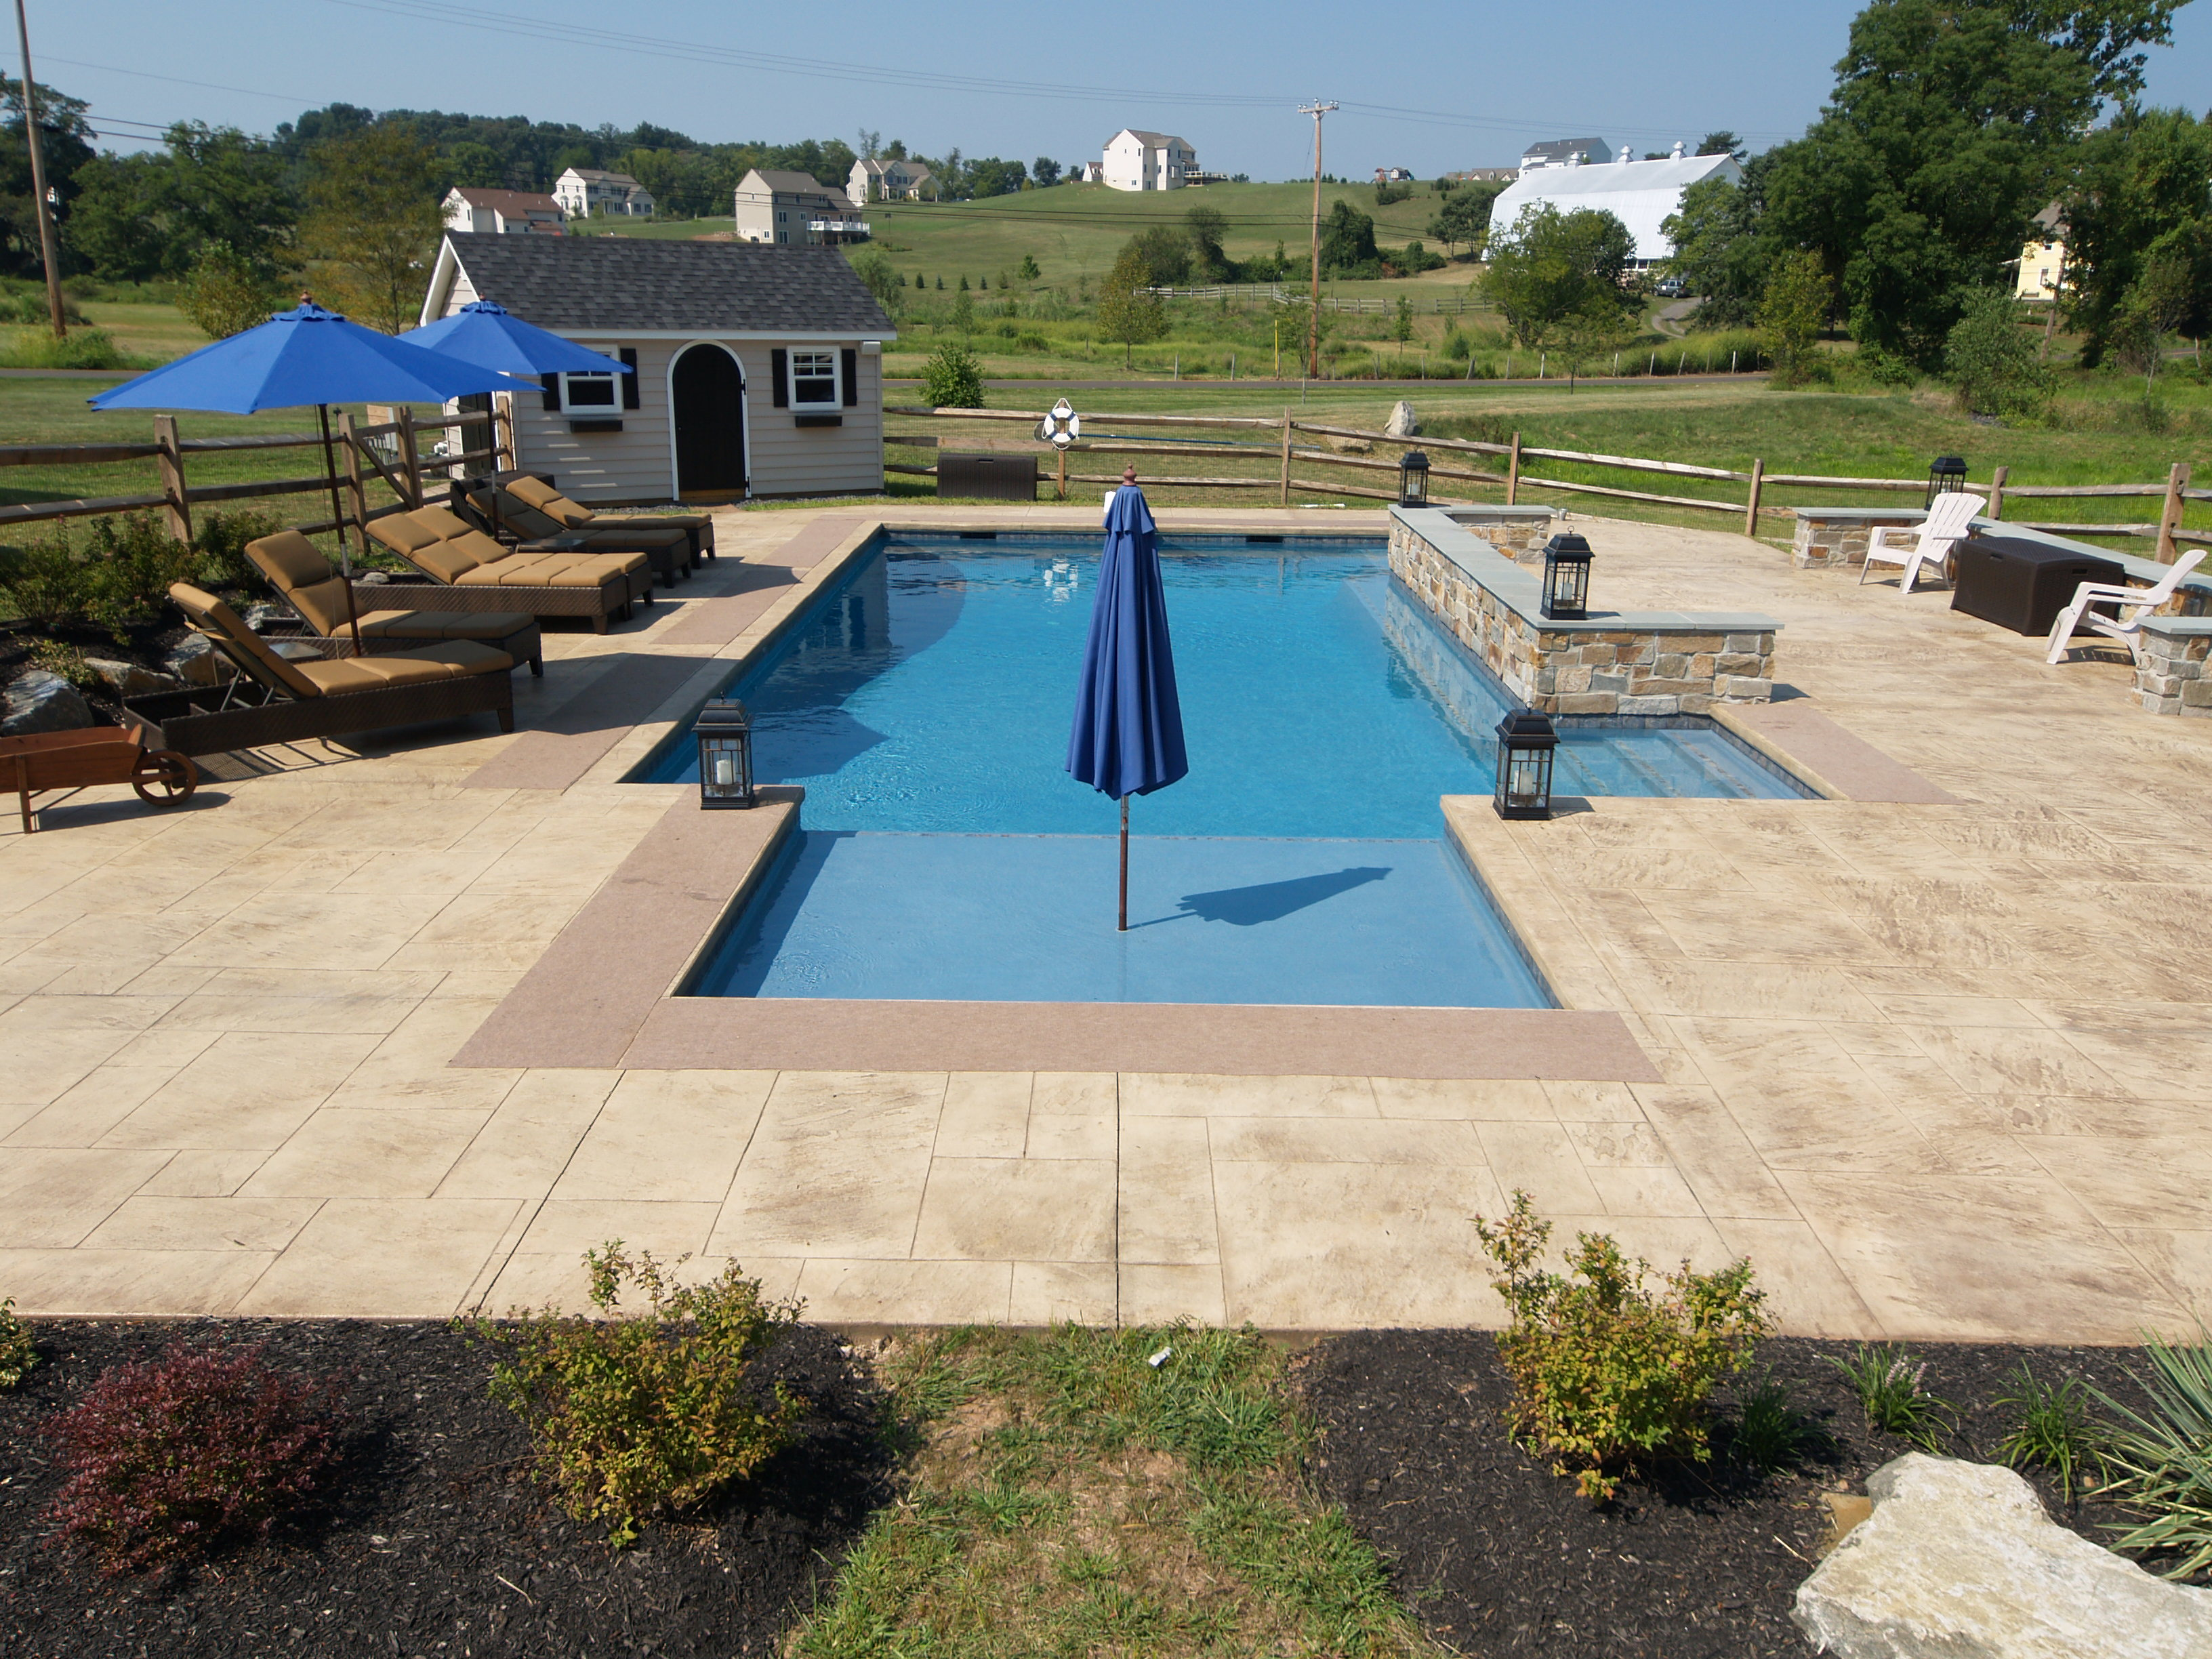 Gunite Swimming Pool Designs Captivating Gunite Pools & Pool Builders  Swimming Pool Design  Fronheiser Pools Inspiration